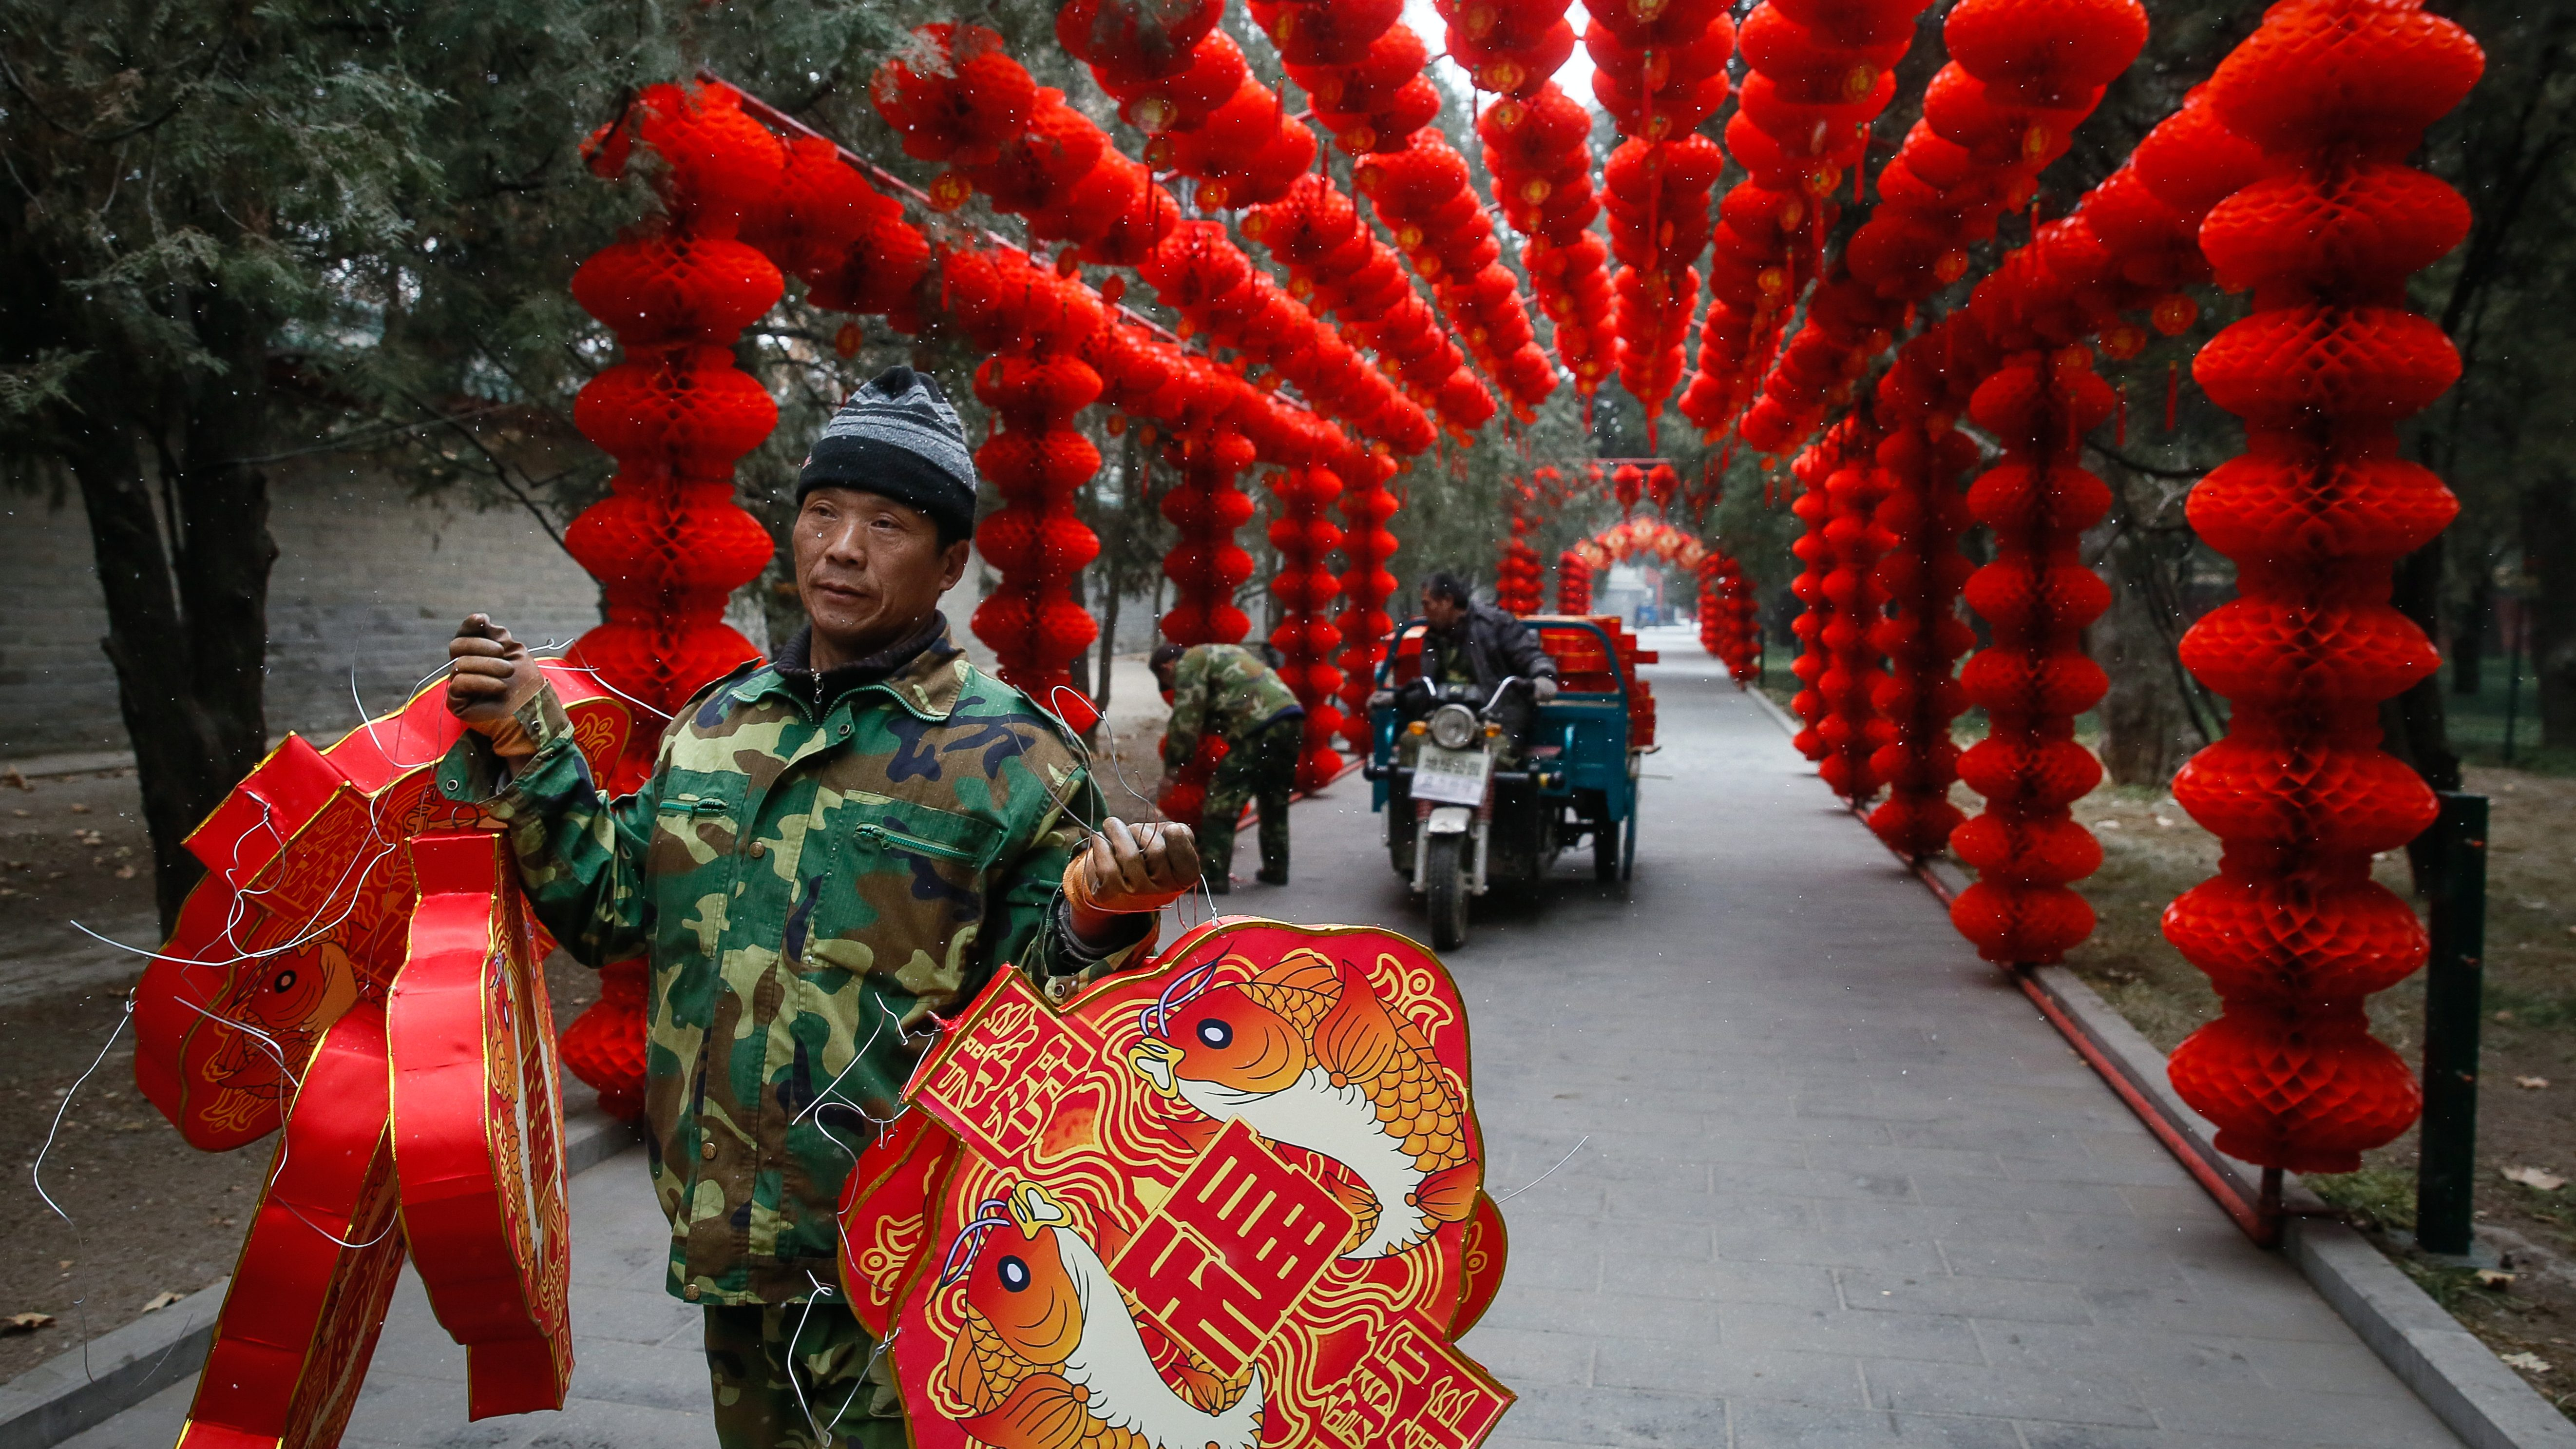 To deal with cash envelopes and other Lunar New Year spending 011b9144f